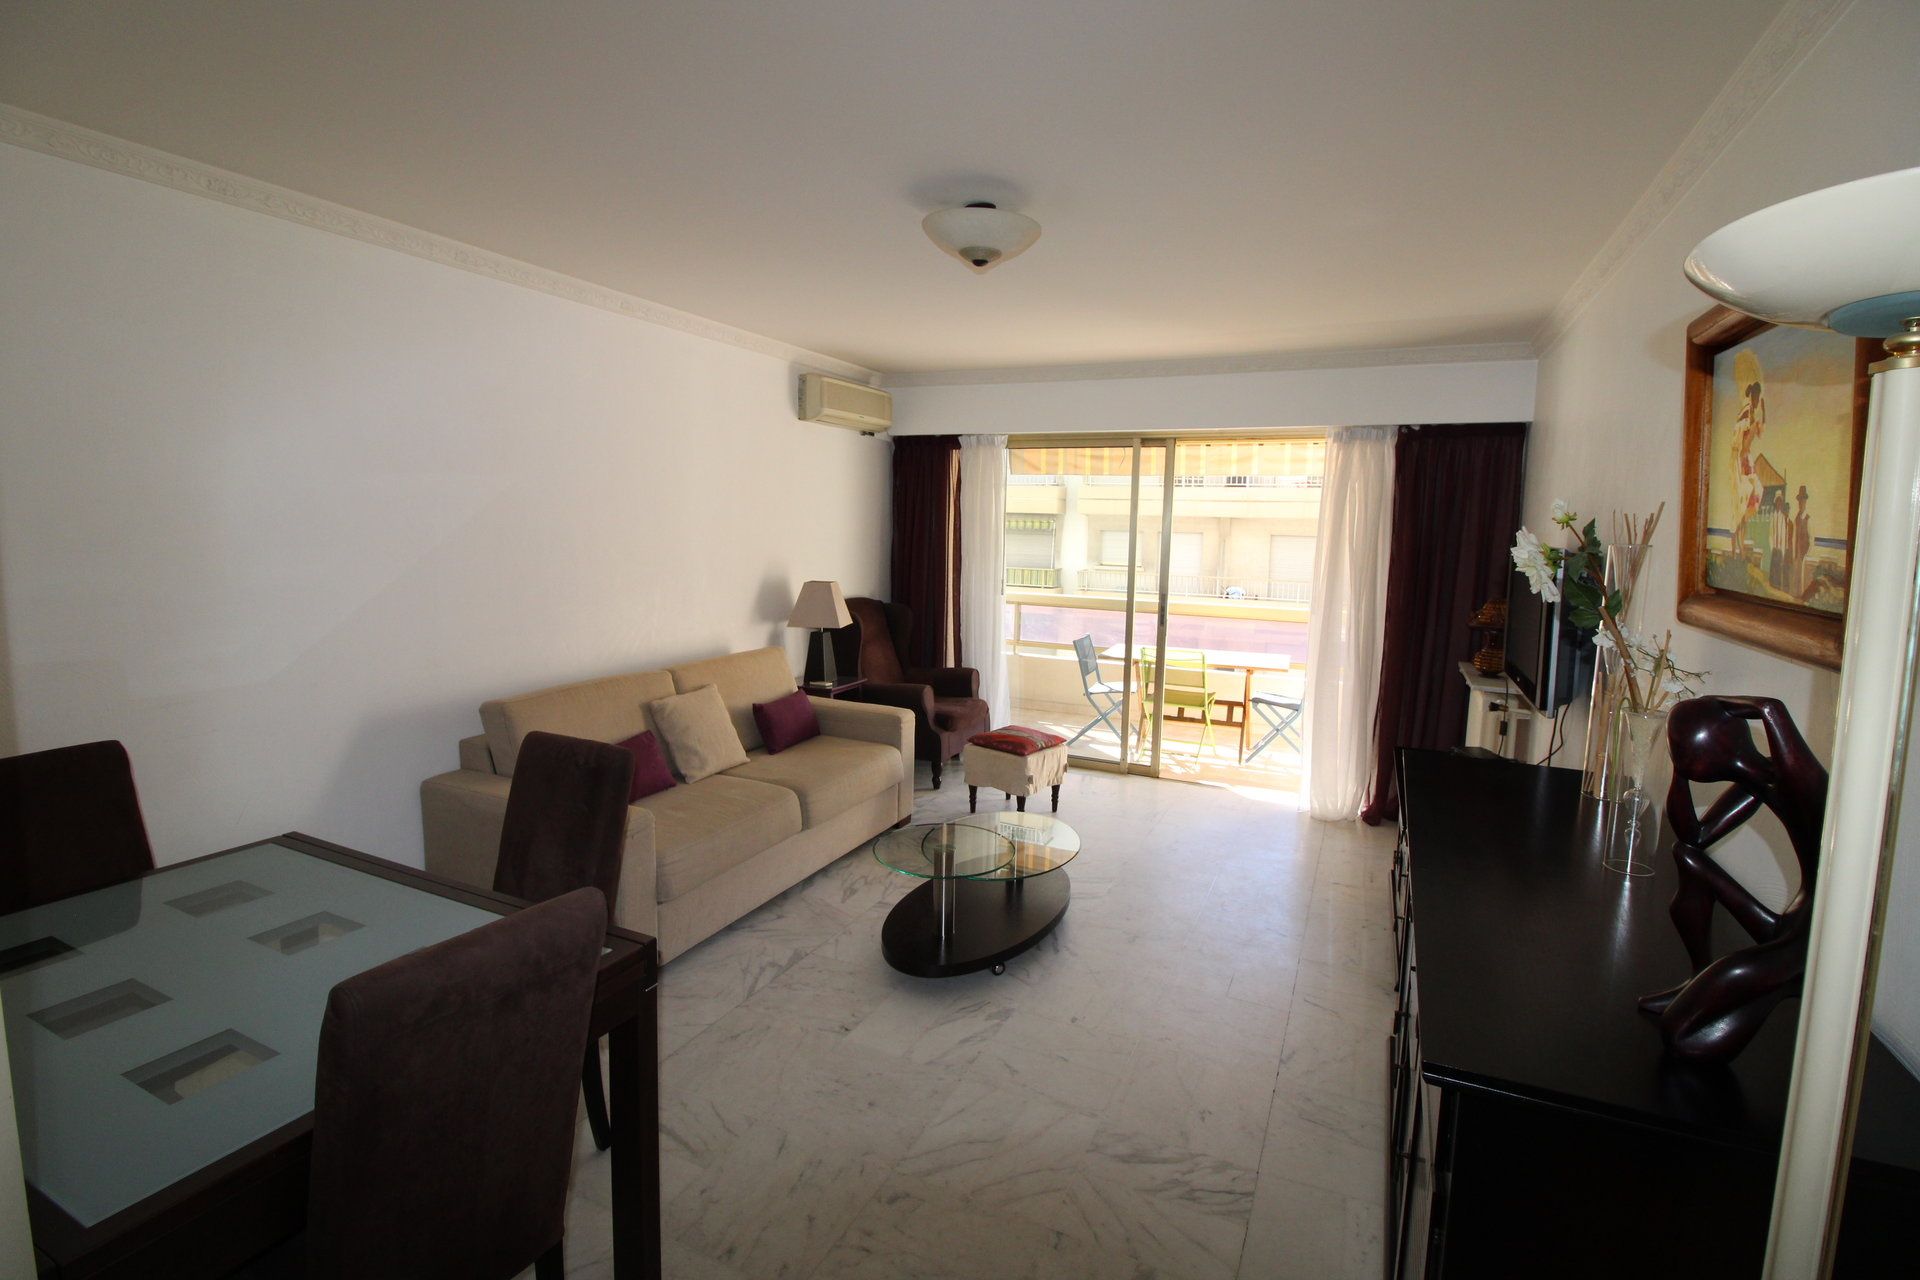 Apartment for rent, next to Carlton Hôtel